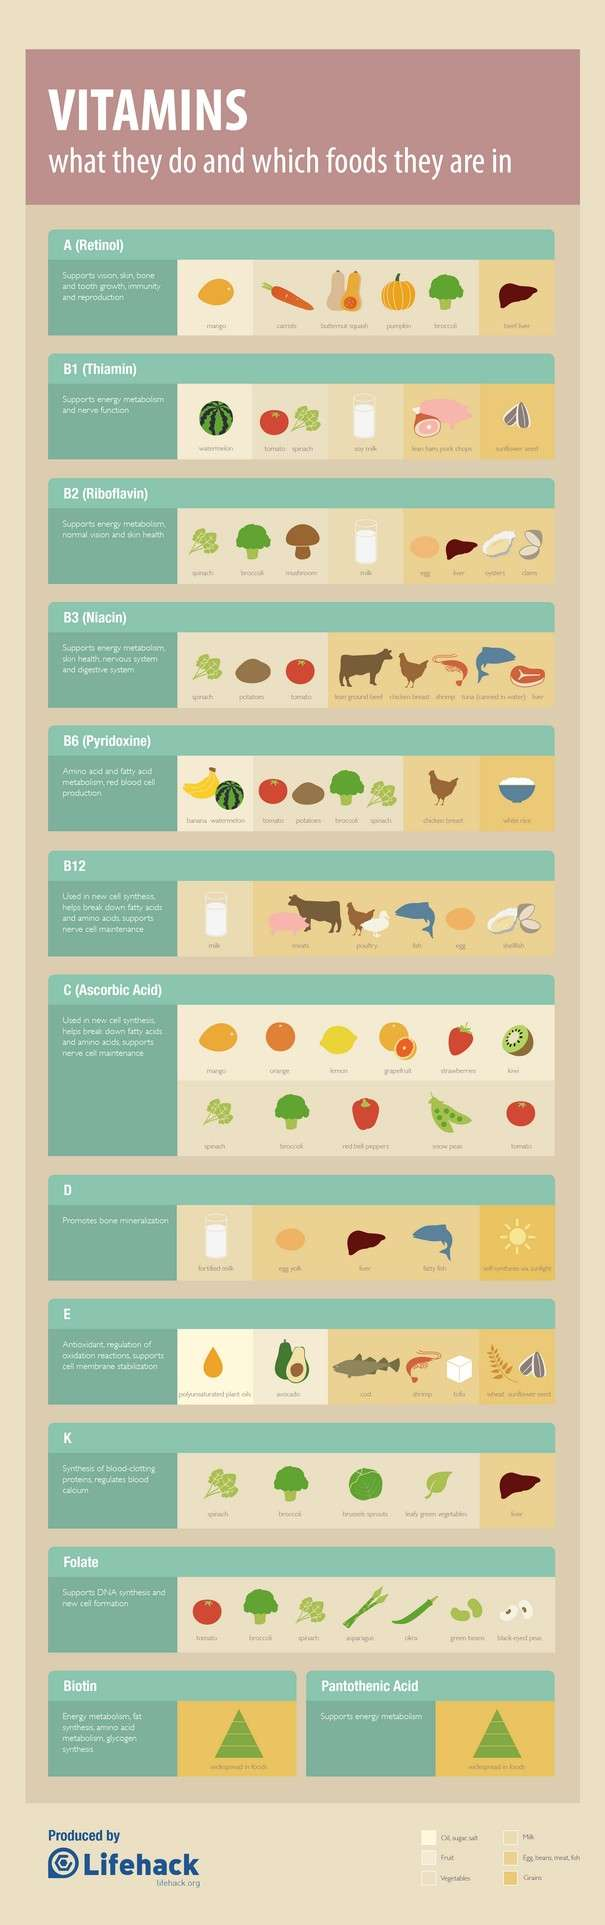 Vitamins Cheat Sheet - Infographic